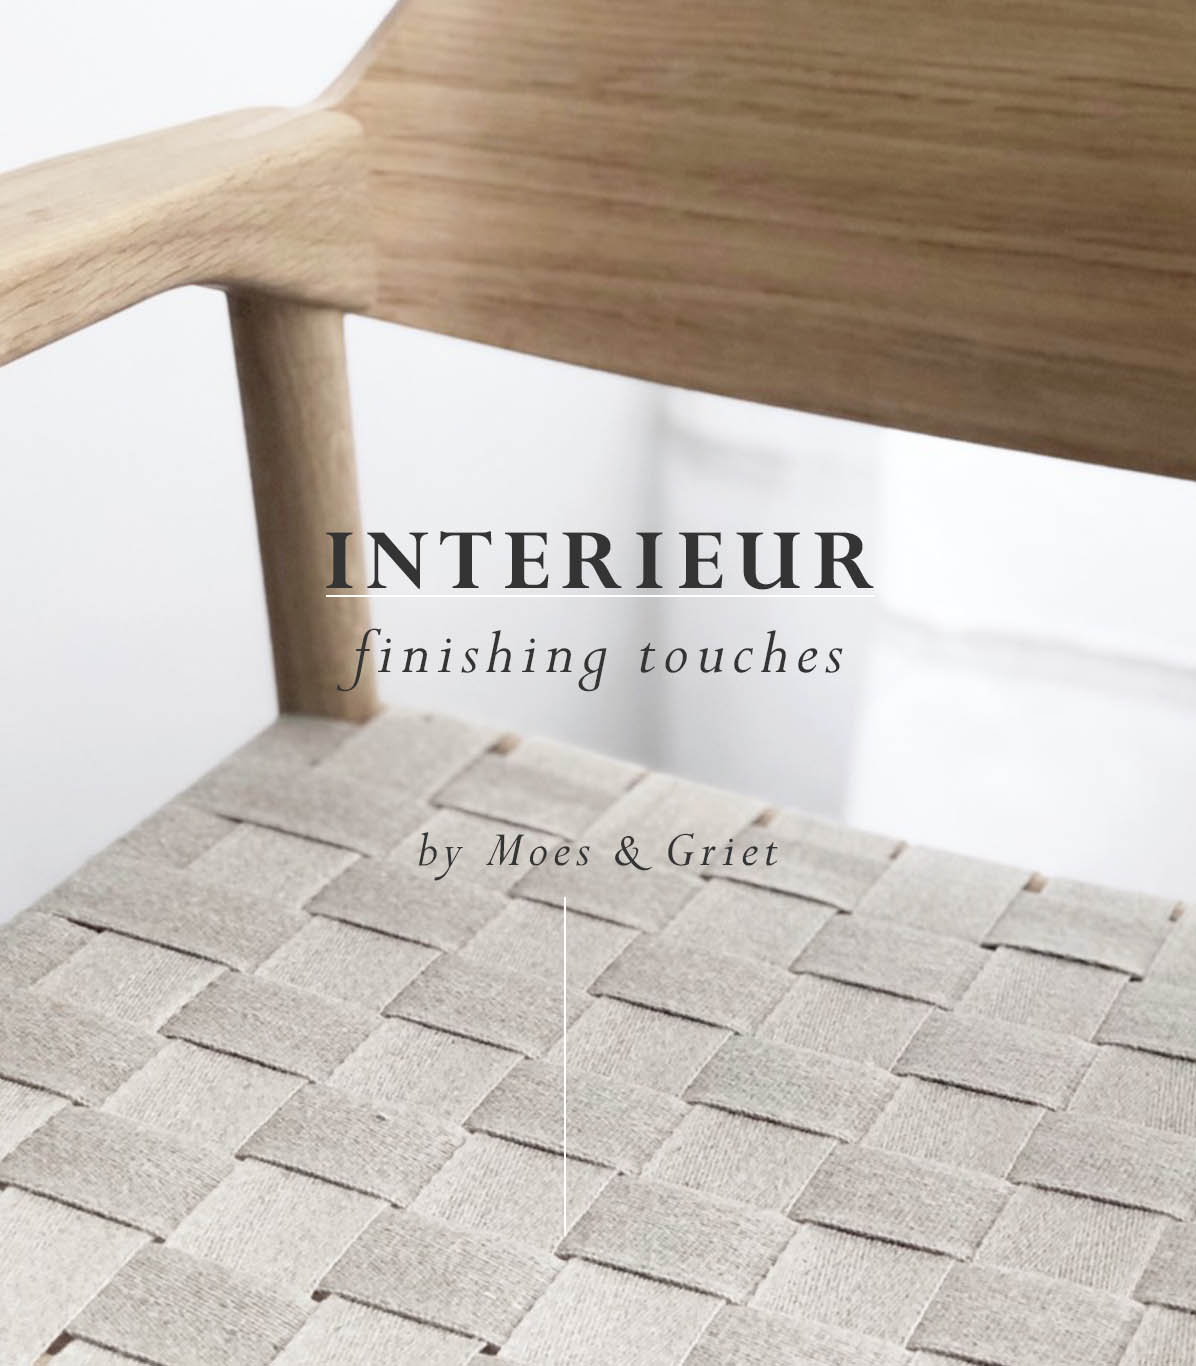 Inkoop Interieur Accessoires.The Journal How To Style Interieur Finishing Touches Moes Griet